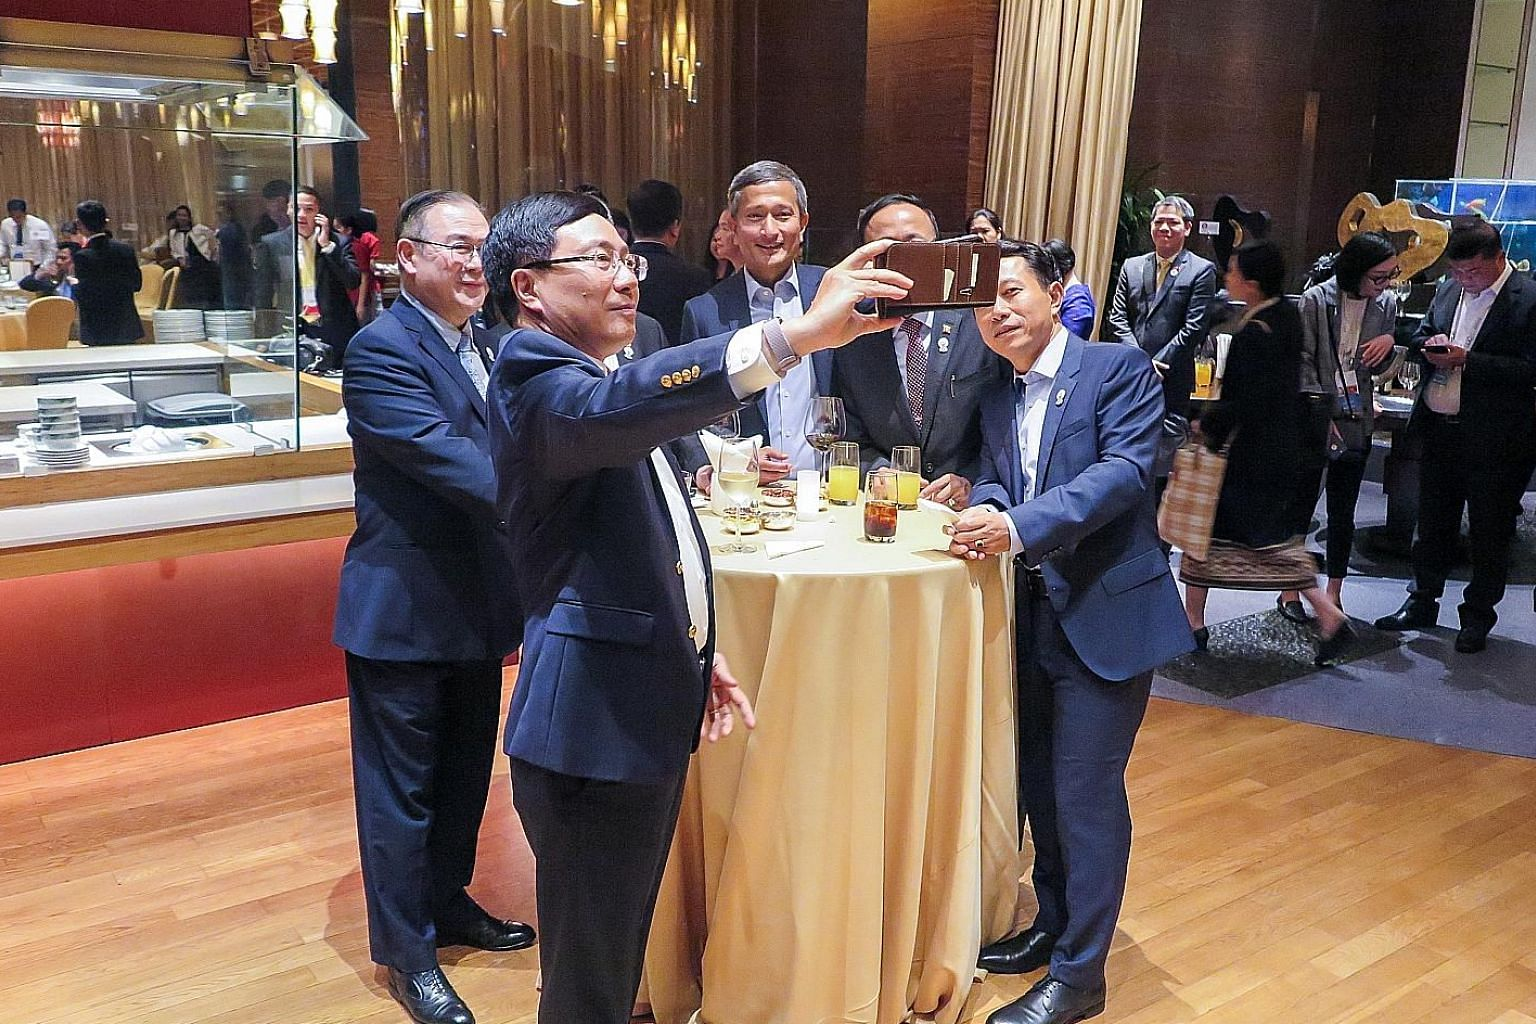 Foreign Minister Vivian Balakrishnan (centre in picture) arrived in Bangkok yesterday to attend the Asean Foreign Ministers' Meeting and related discussions like the East Asia Summit and Asean Regional Forum. The annual Asean Foreign Ministers' Meeti